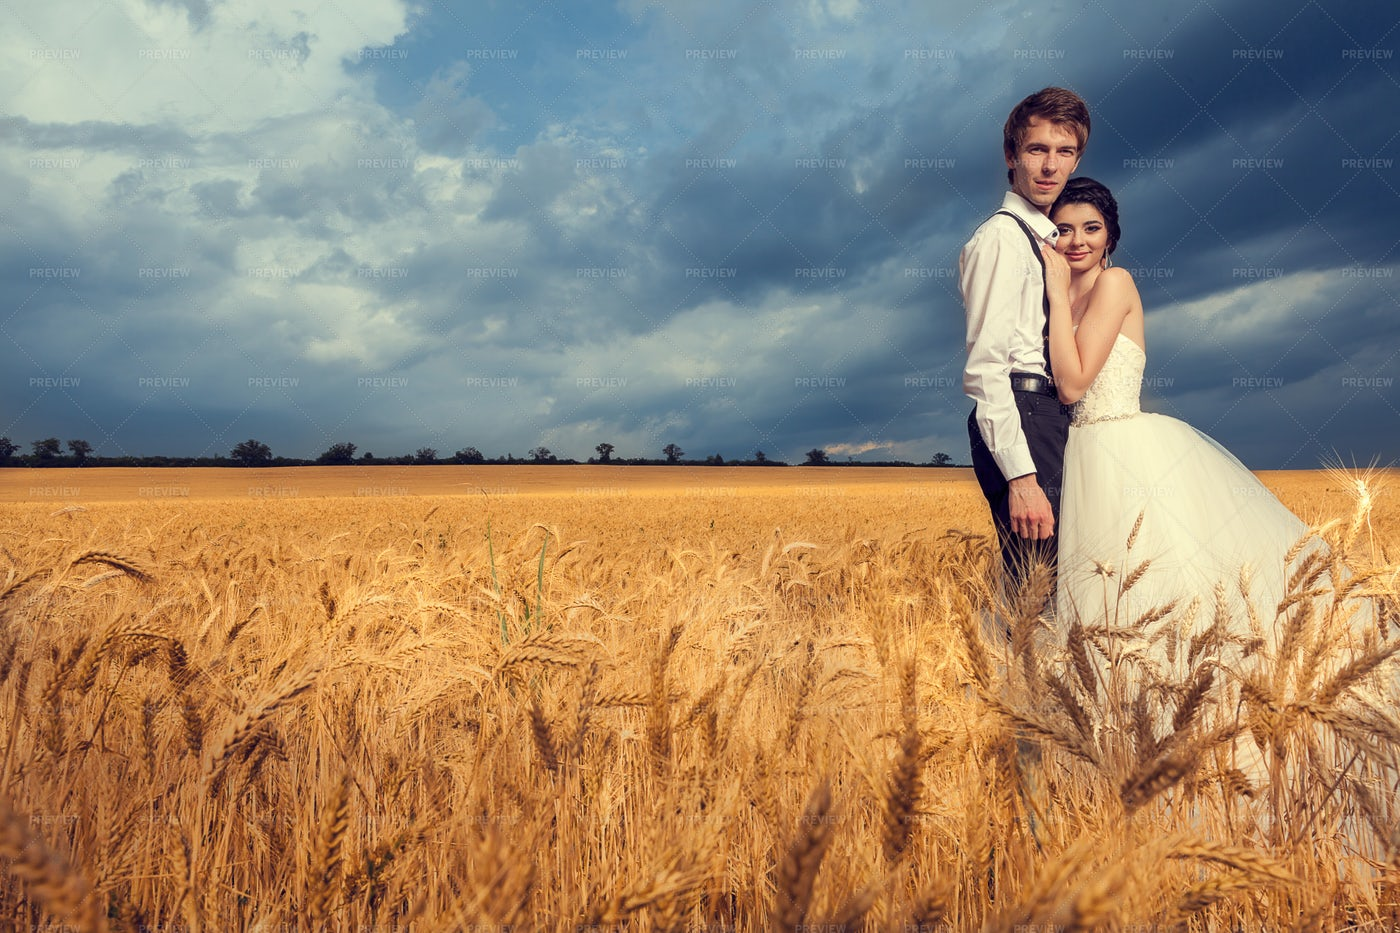 Newlyweds In Wheat Field: Stock Photos